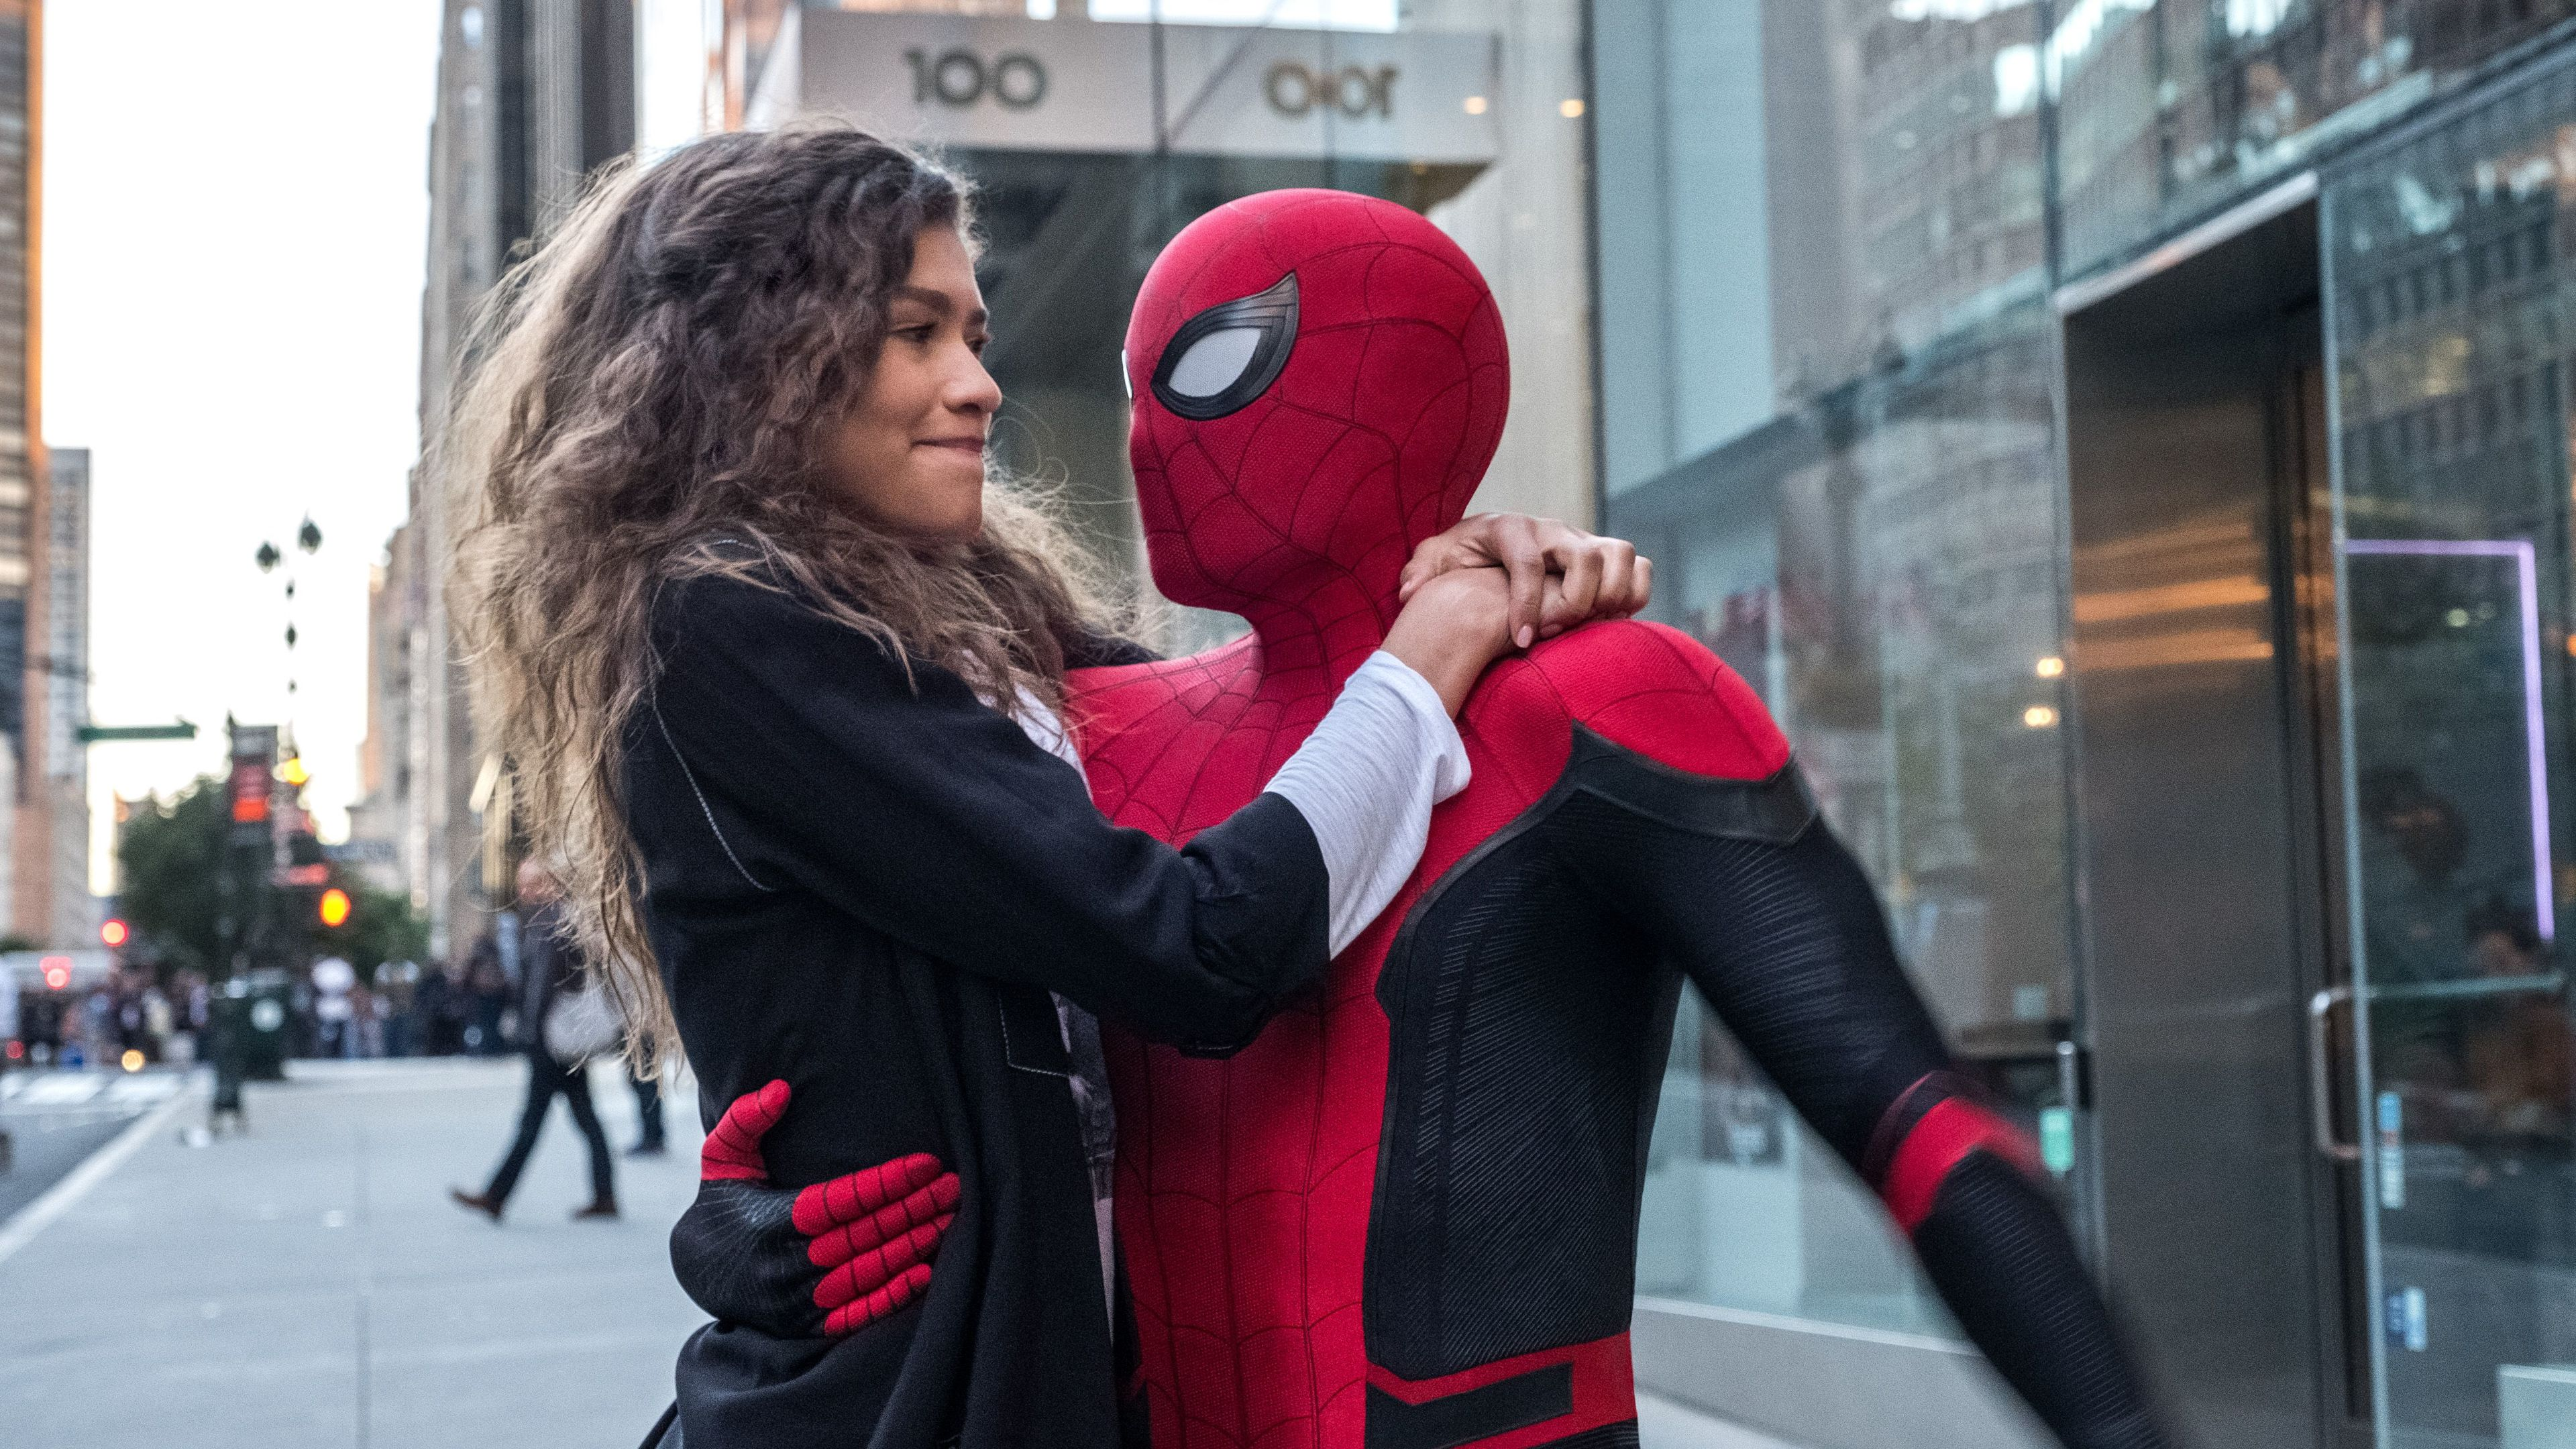 spider man and zendaya in spider man far from home 2019 4k 1558219902 - Spider Man And Zendaya In Spider Man Far From Home 2019 4k - tom holland wallpapers, superheroes wallpapers, spiderman wallpapers, spiderman far from home wallpapers, movies wallpapers, hd-wallpapers, 4k-wallpapers, 2019 movies wallpapers